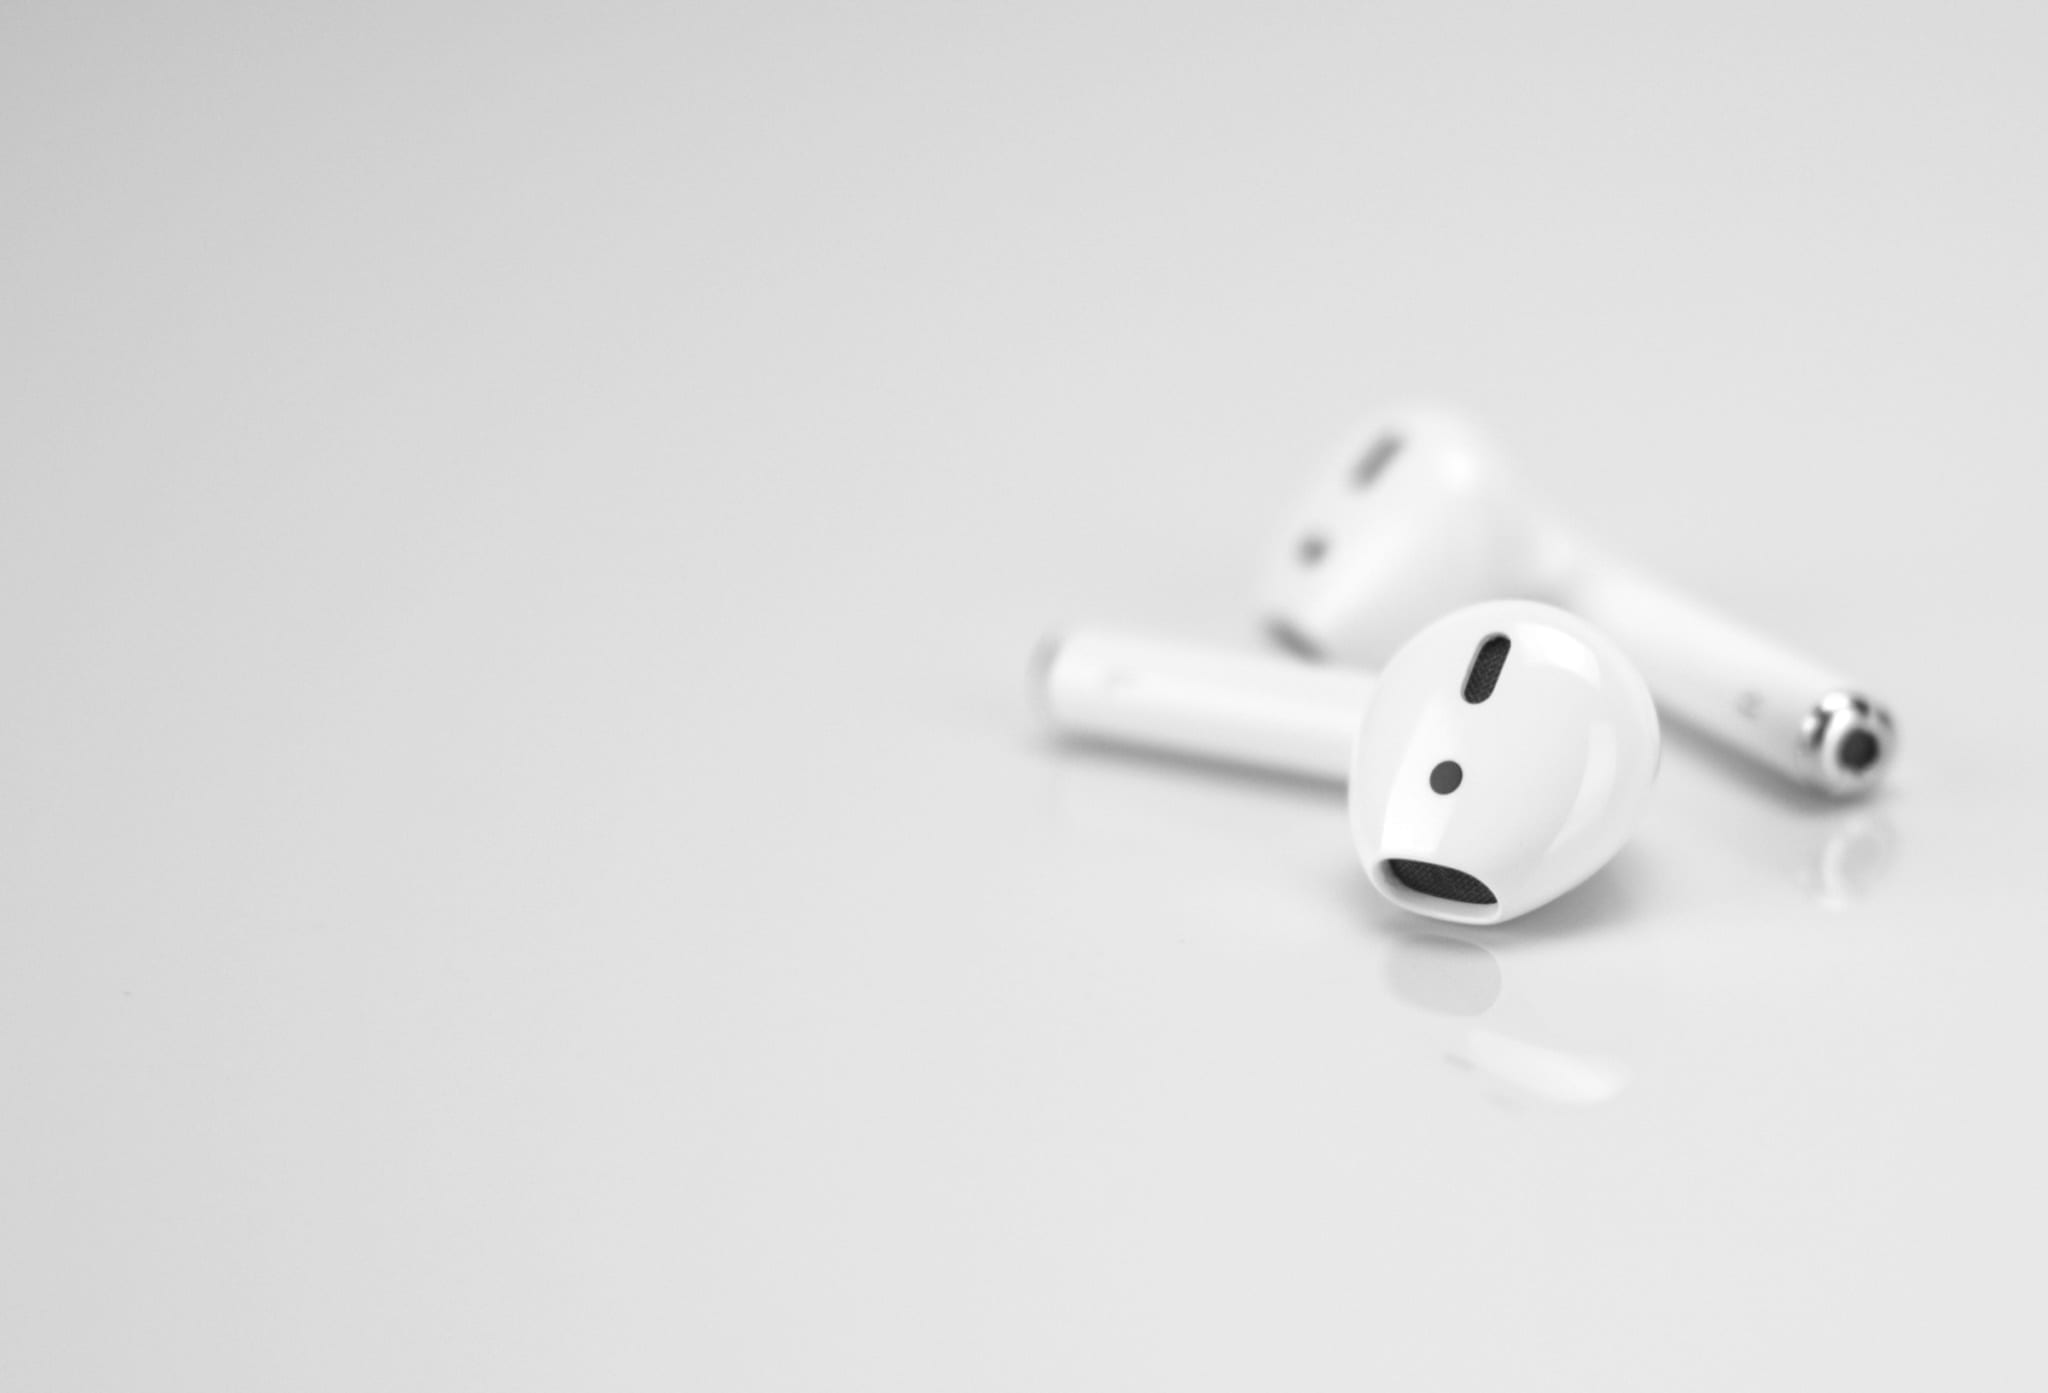 Apple Airpods 2 - barrett-ward-451723-unsplash